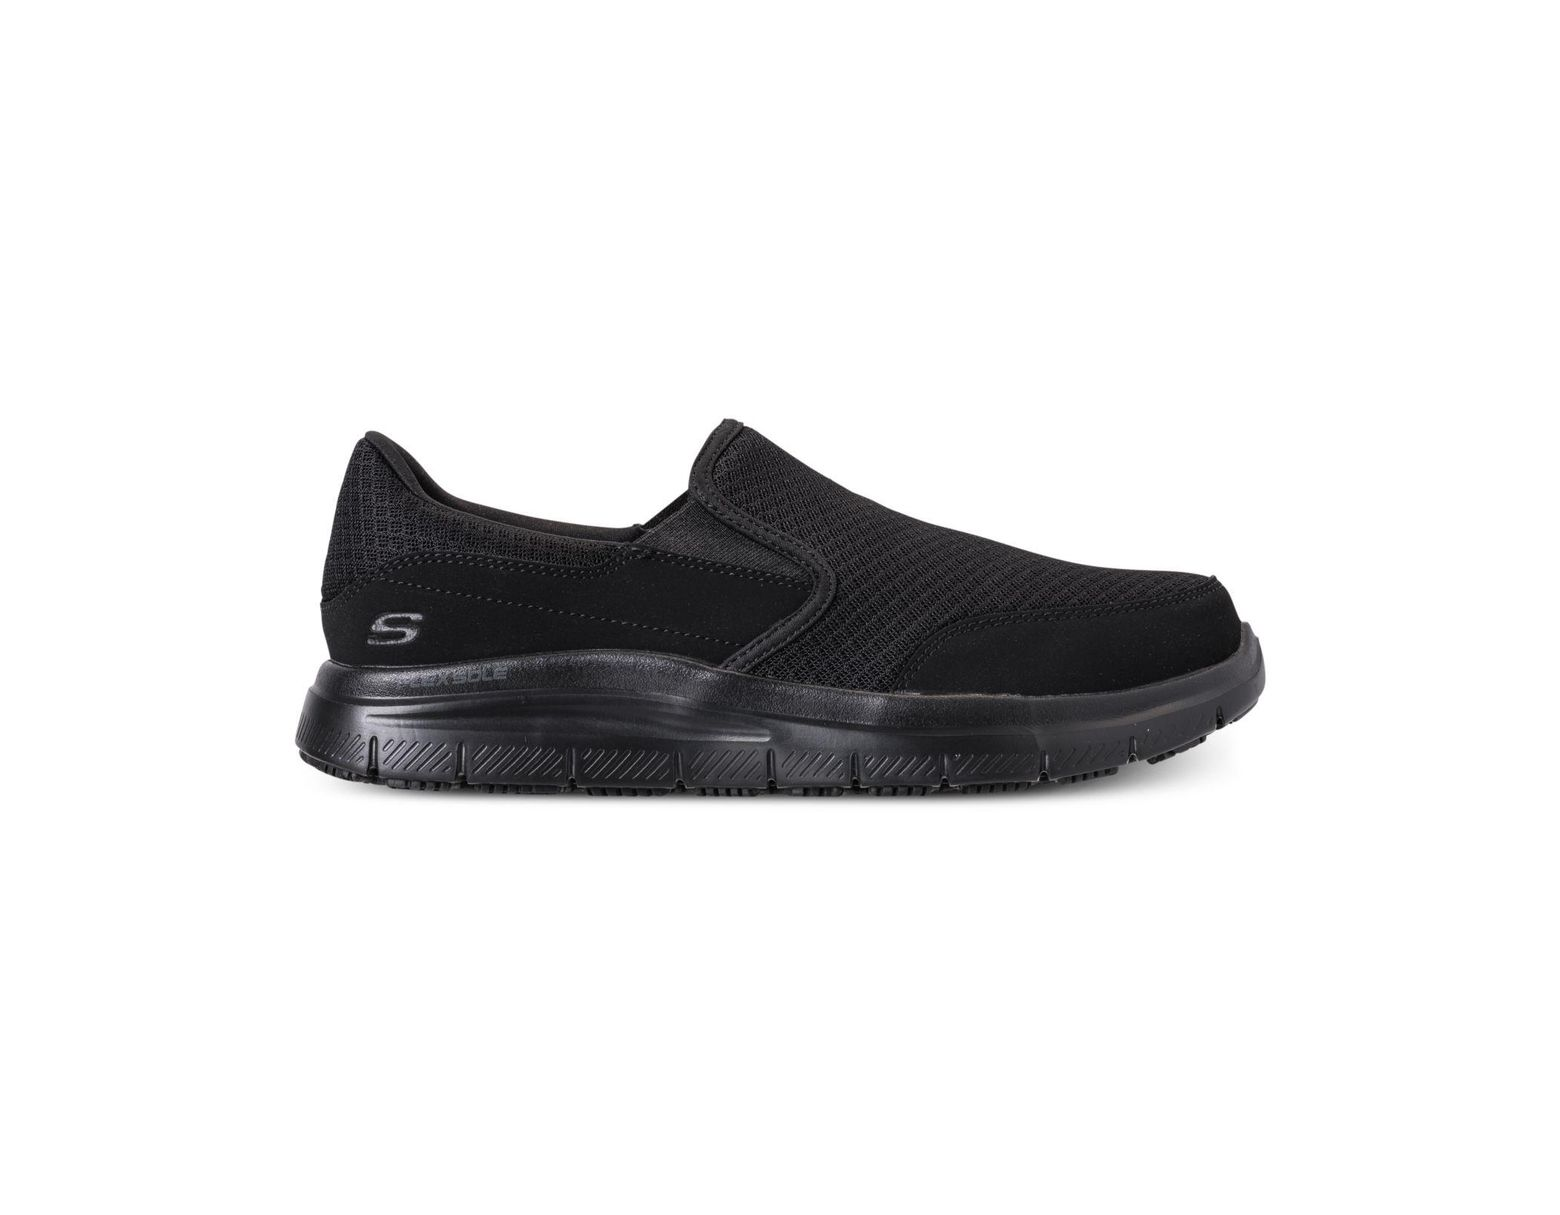 3187ab21a0a Men's Black Work Relaxed Fit: Flex Advantage - Mcallen Sr Slip Resistant  Wide Width Casual Sneakers From Finish Line